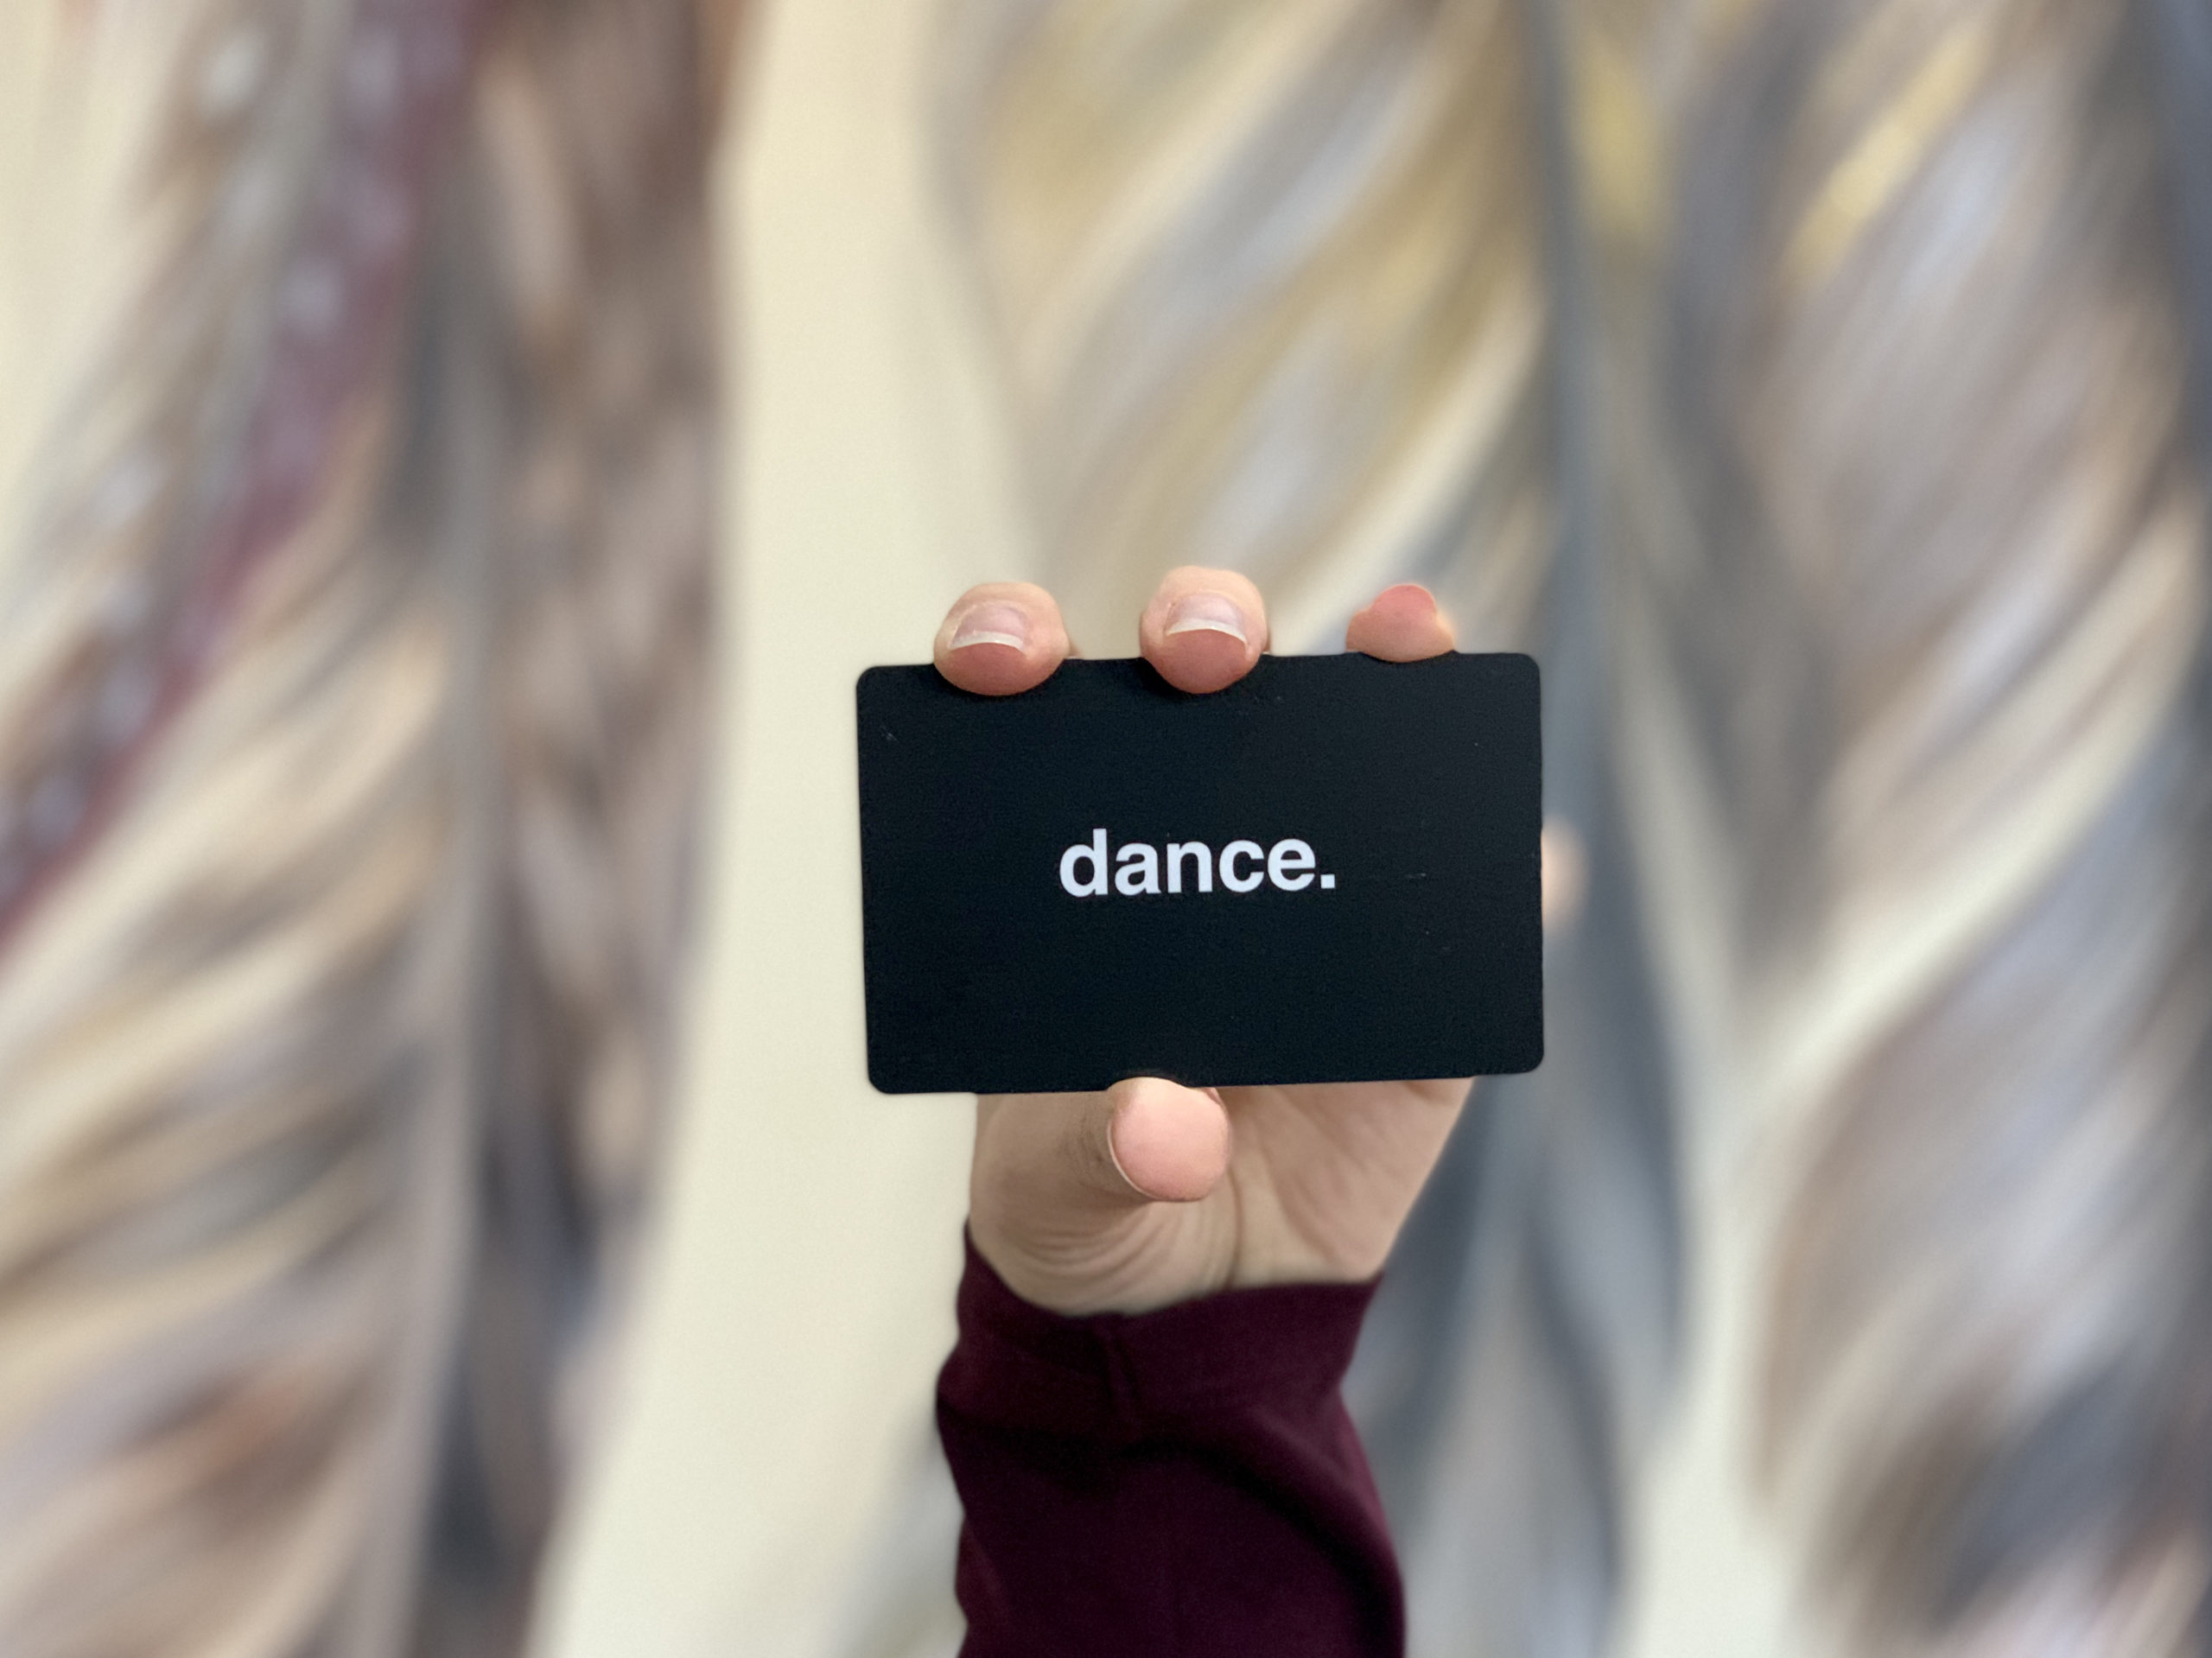 Gift card held in woman's hand with blurred background